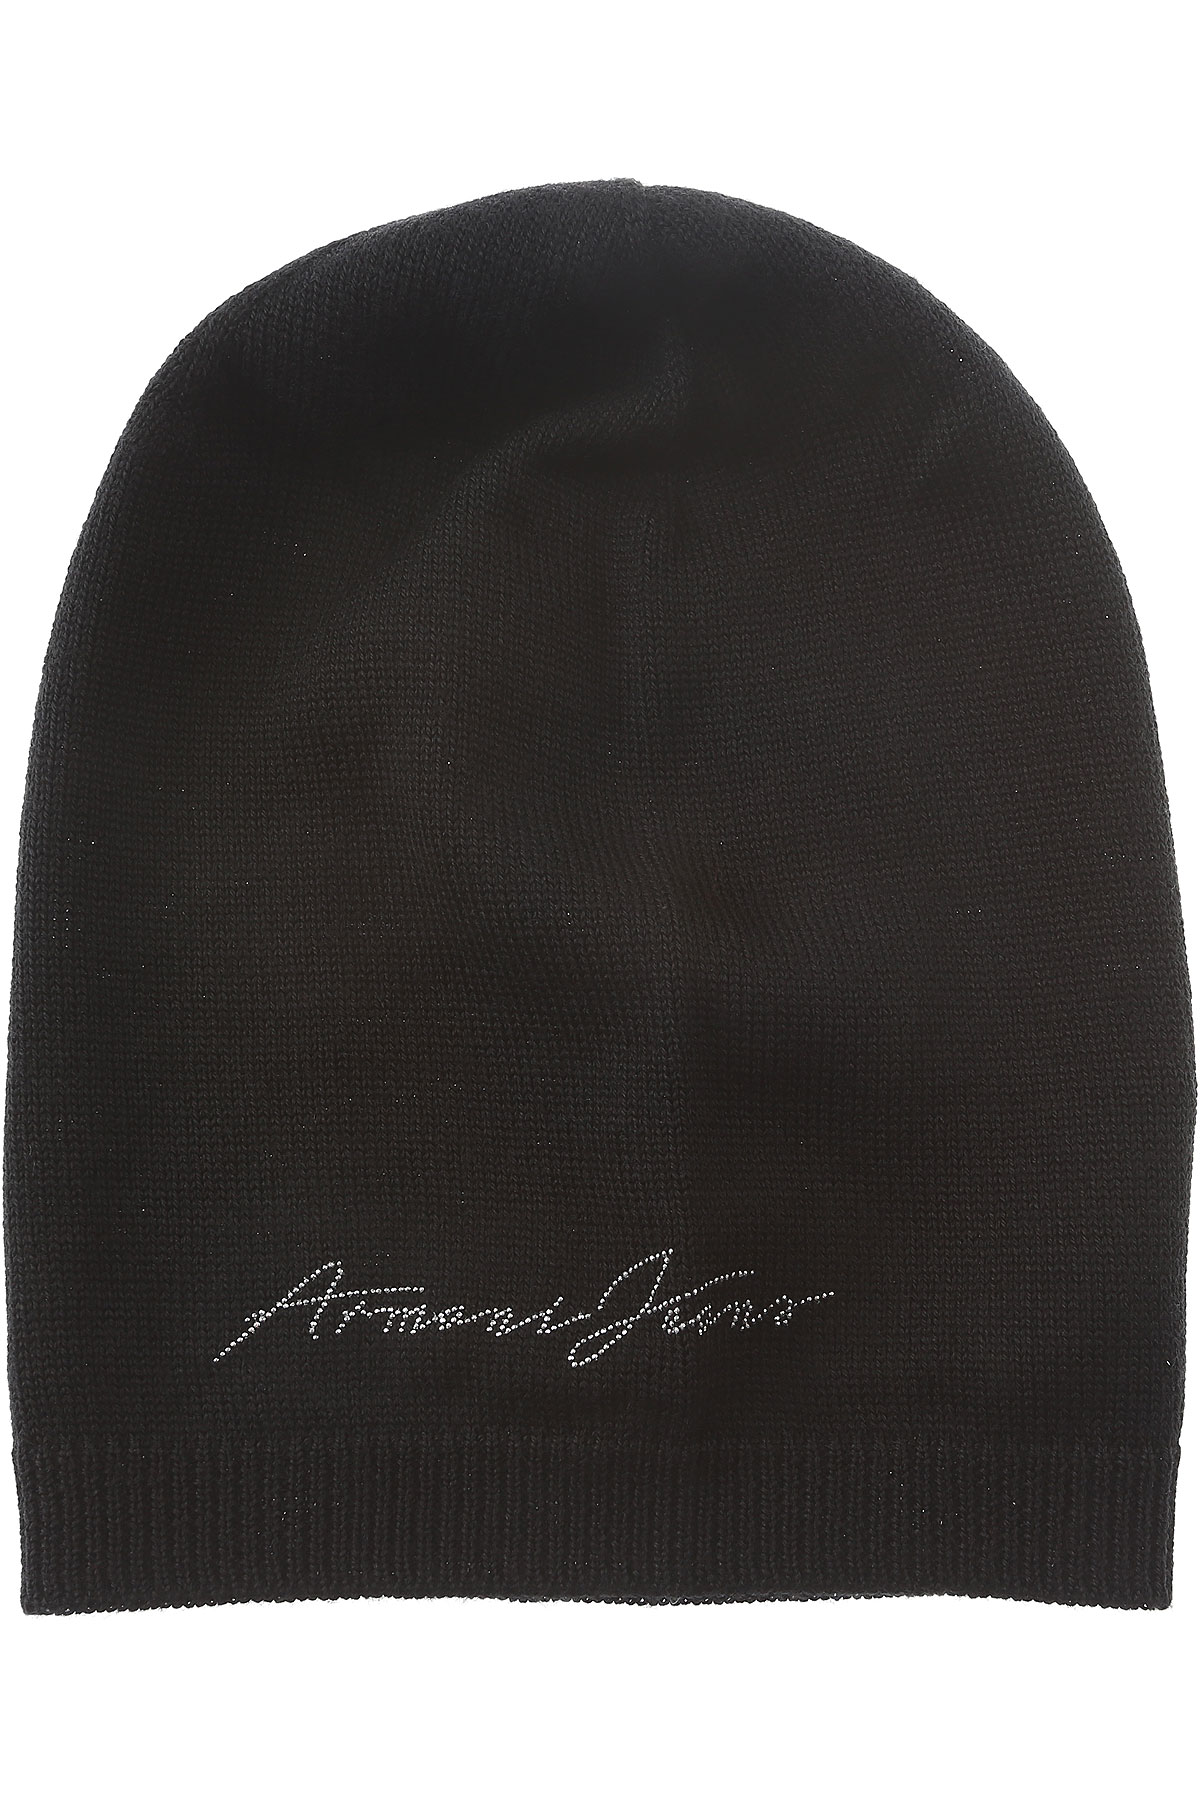 Image of Armani Jeans Hat for Women On Sale in Outlet, Wool, 2017, III II I